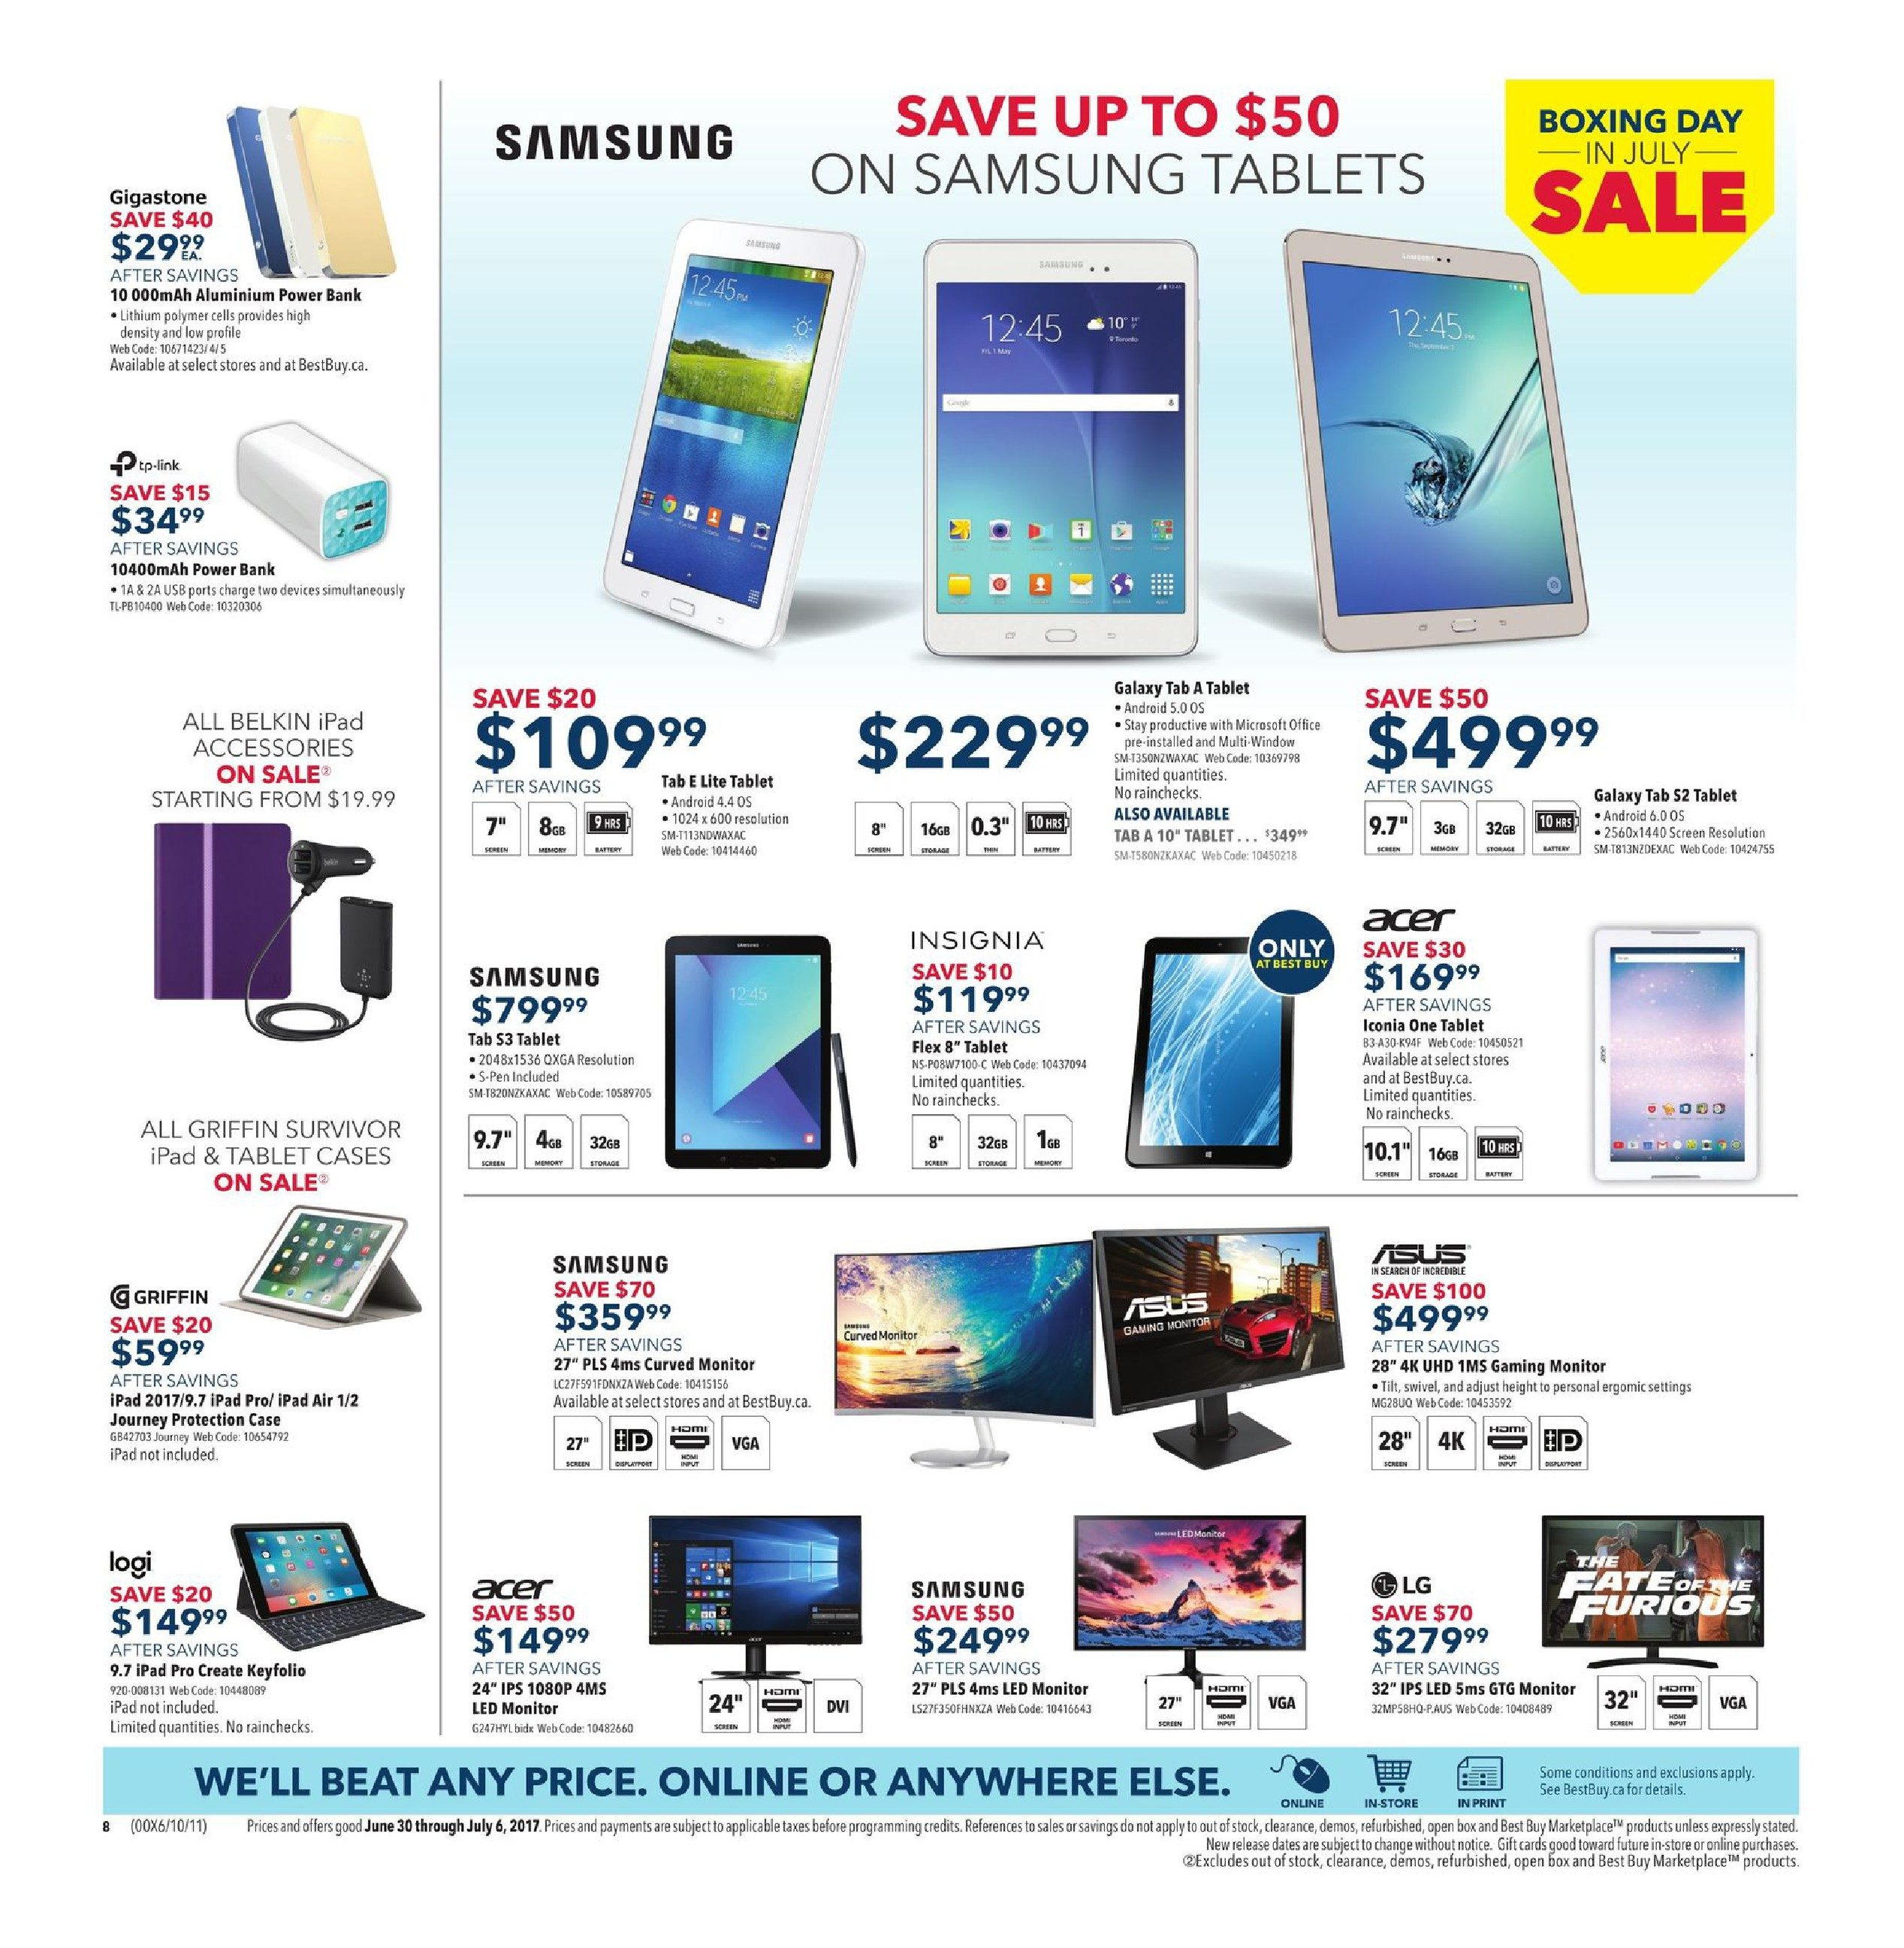 Best Buy Weekly Flyer Boxing Day In July Sale Jun 30 Original New Toshiba Integrated Circuit O 5200 1 Of See More Jul 6